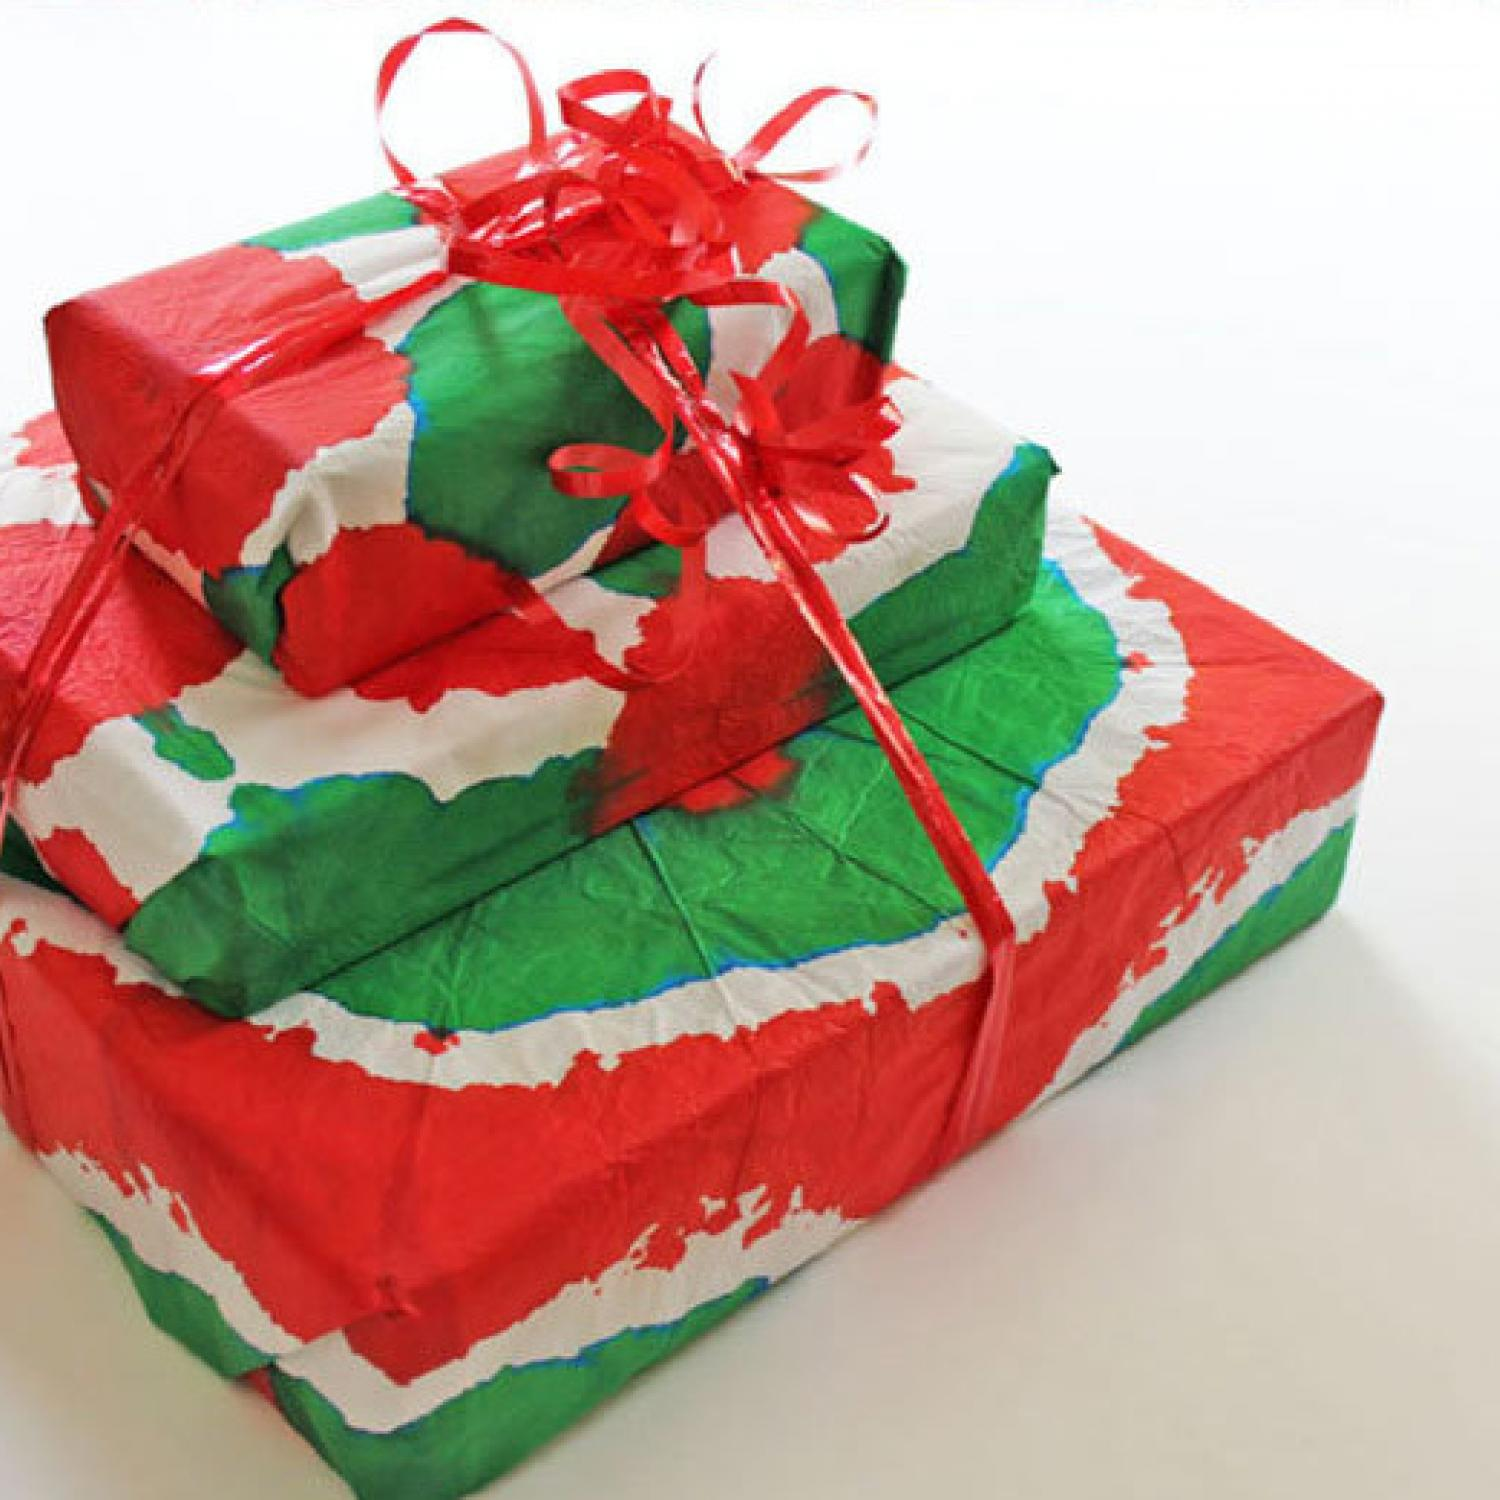 9 DIY Gift Wrap Ideas Kids Can Help You Make | Parenting